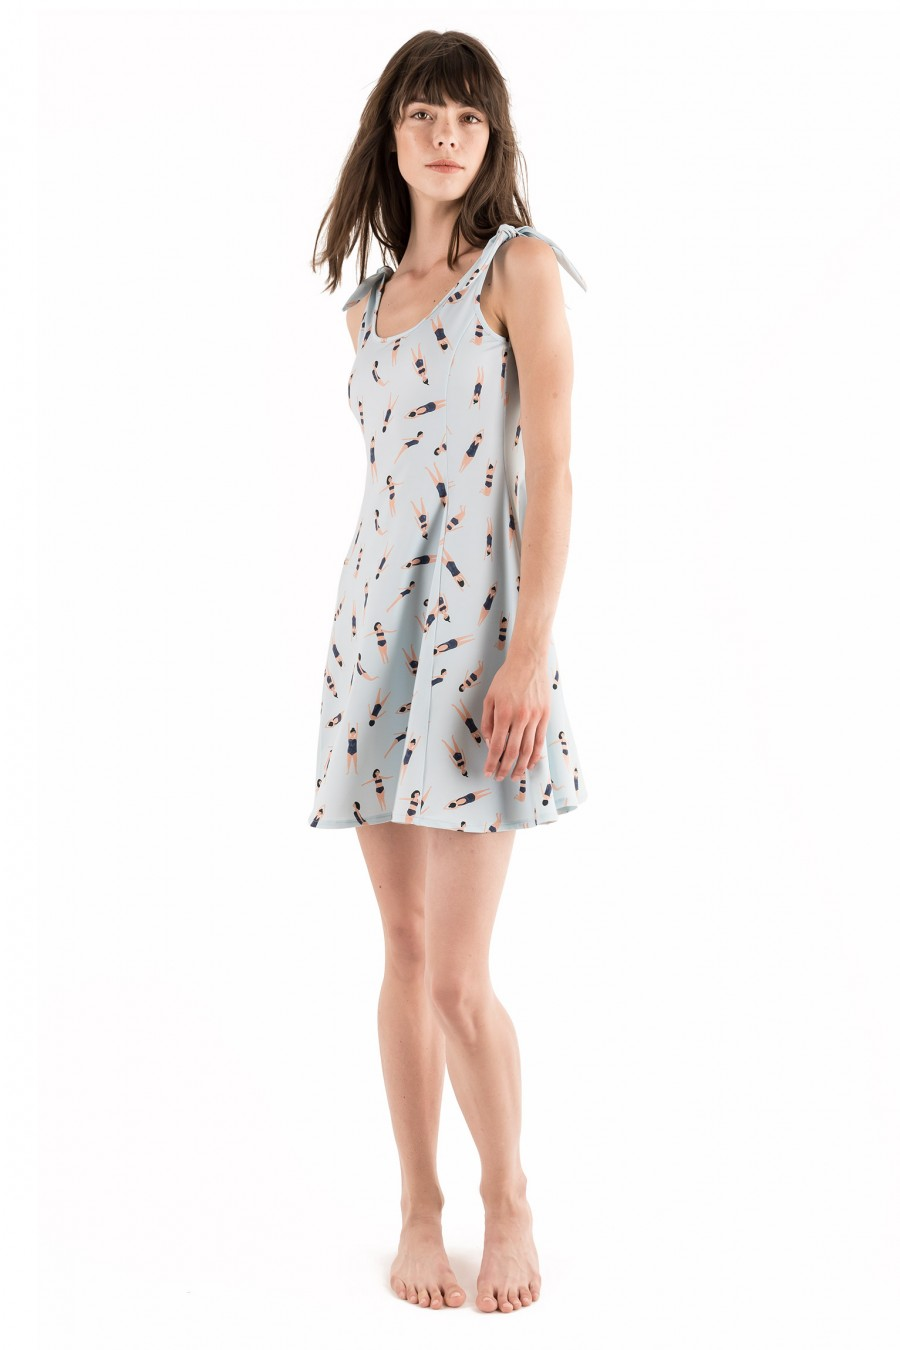 Slim fit dress with swimmers pattern